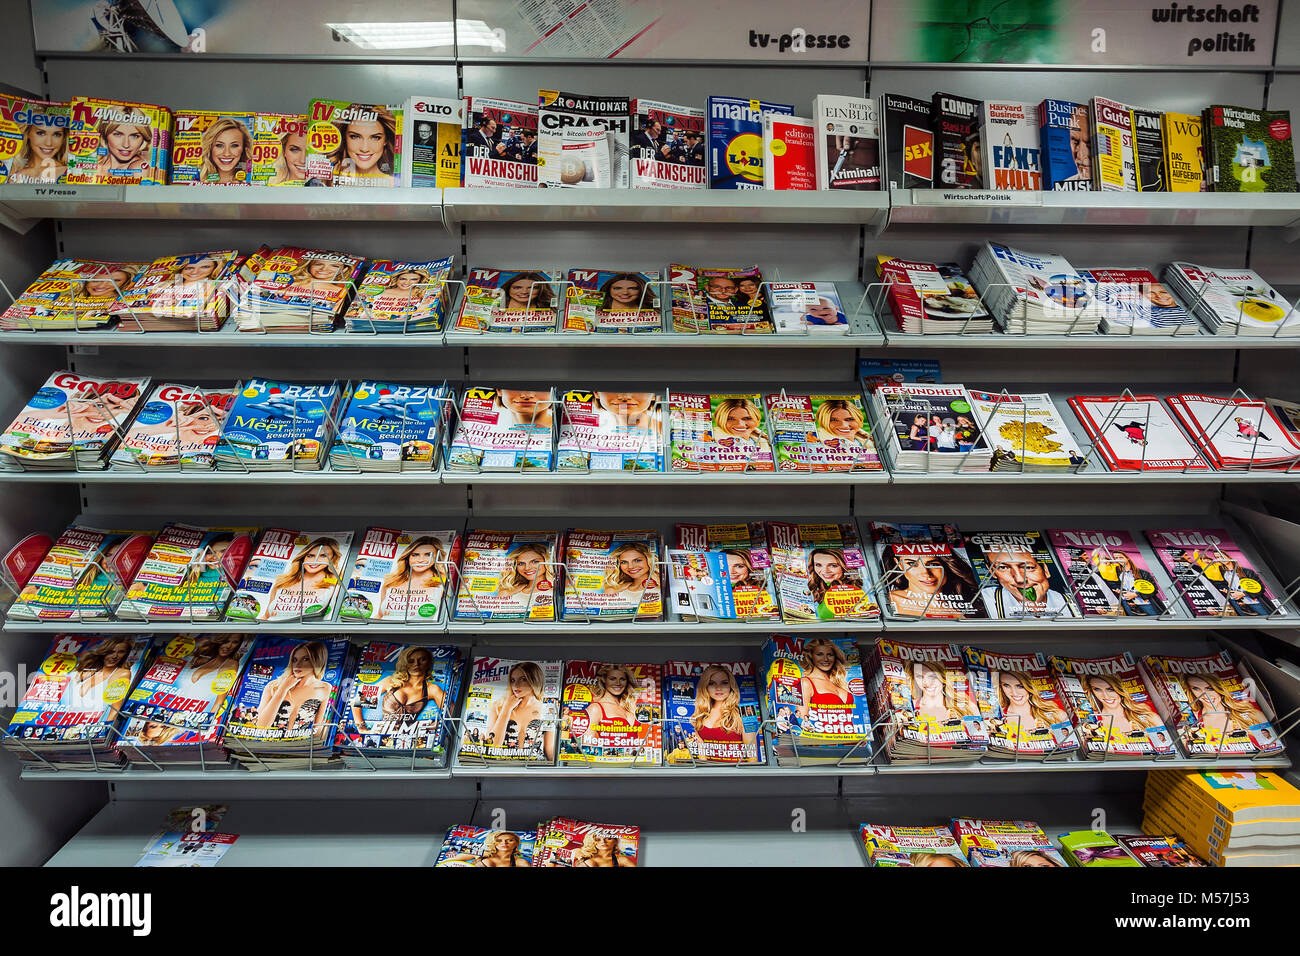 Shelf with magazines in a supermarket,Germany - Stock Image